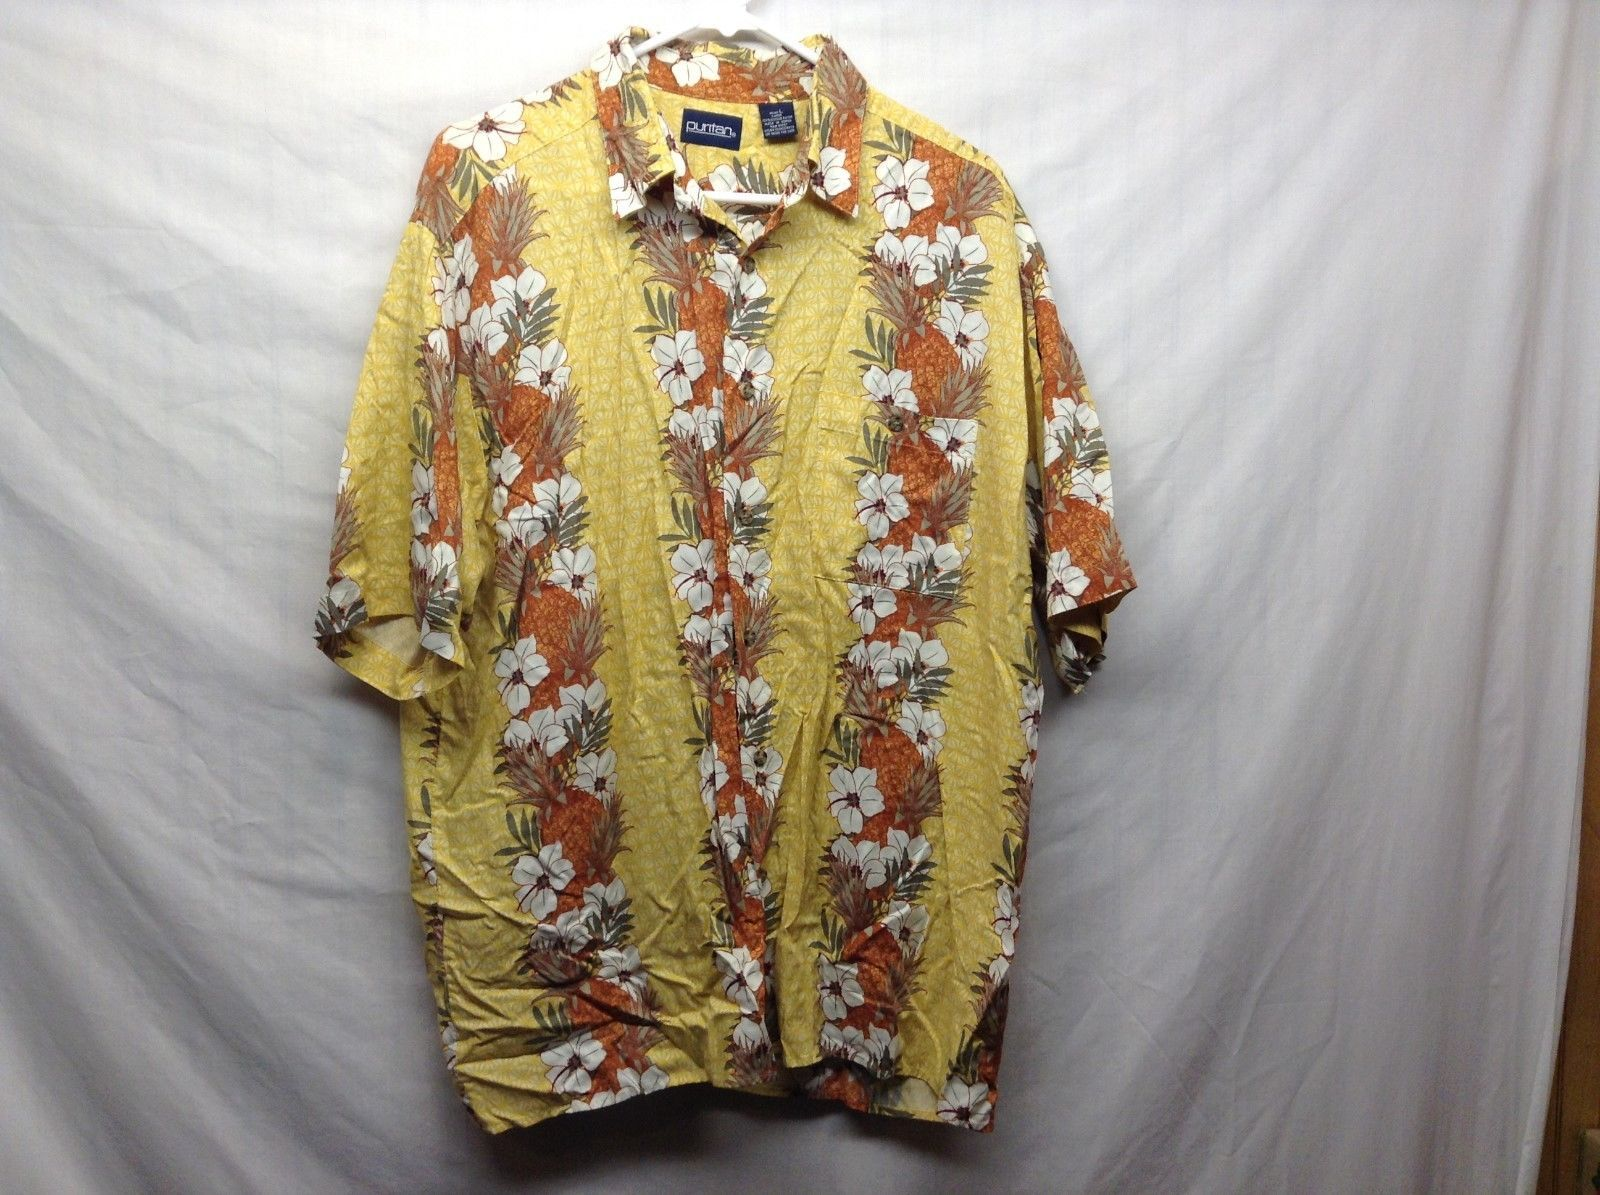 Puritan Men's Casual Summer Hawaiian Shirt Sz LG